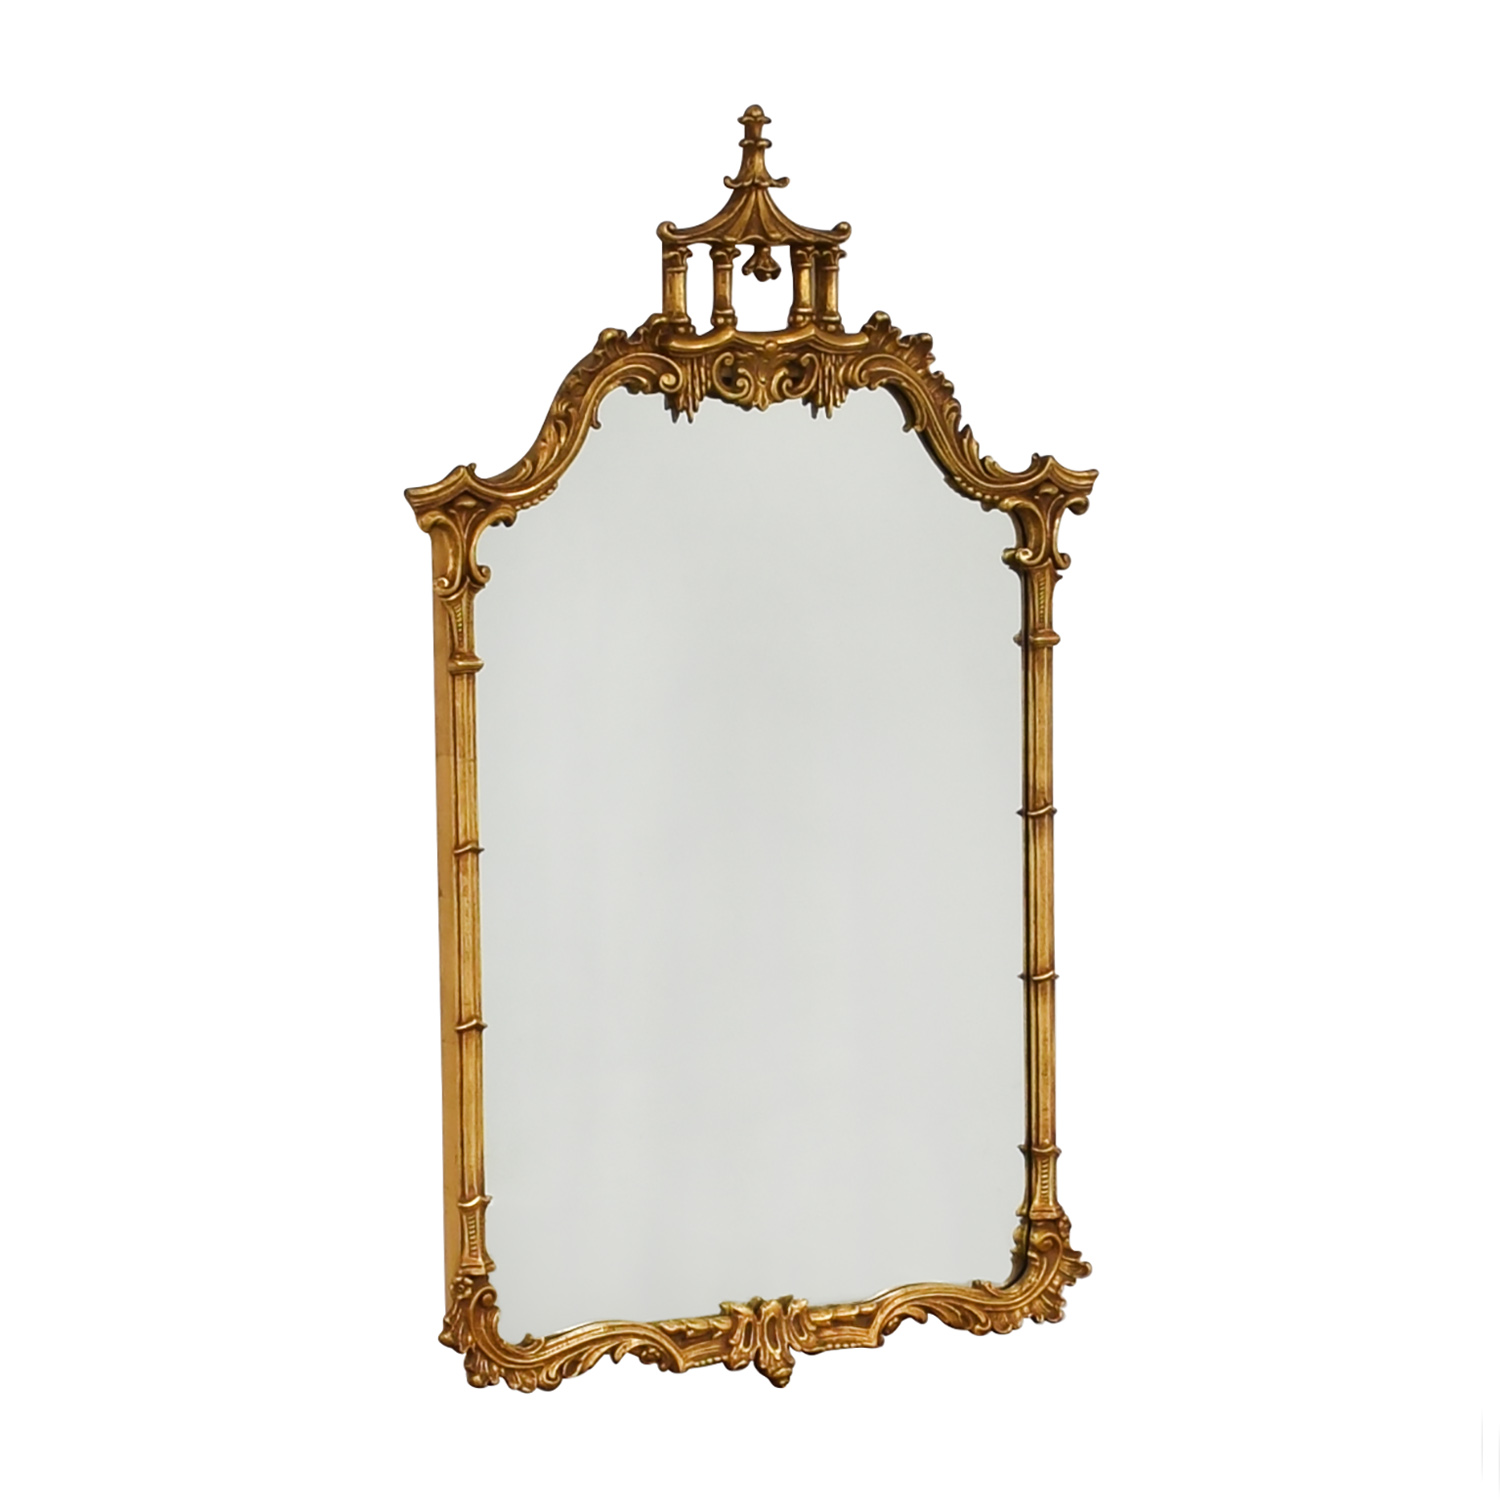 AA Laun Chippendale Style Mirror dimensions